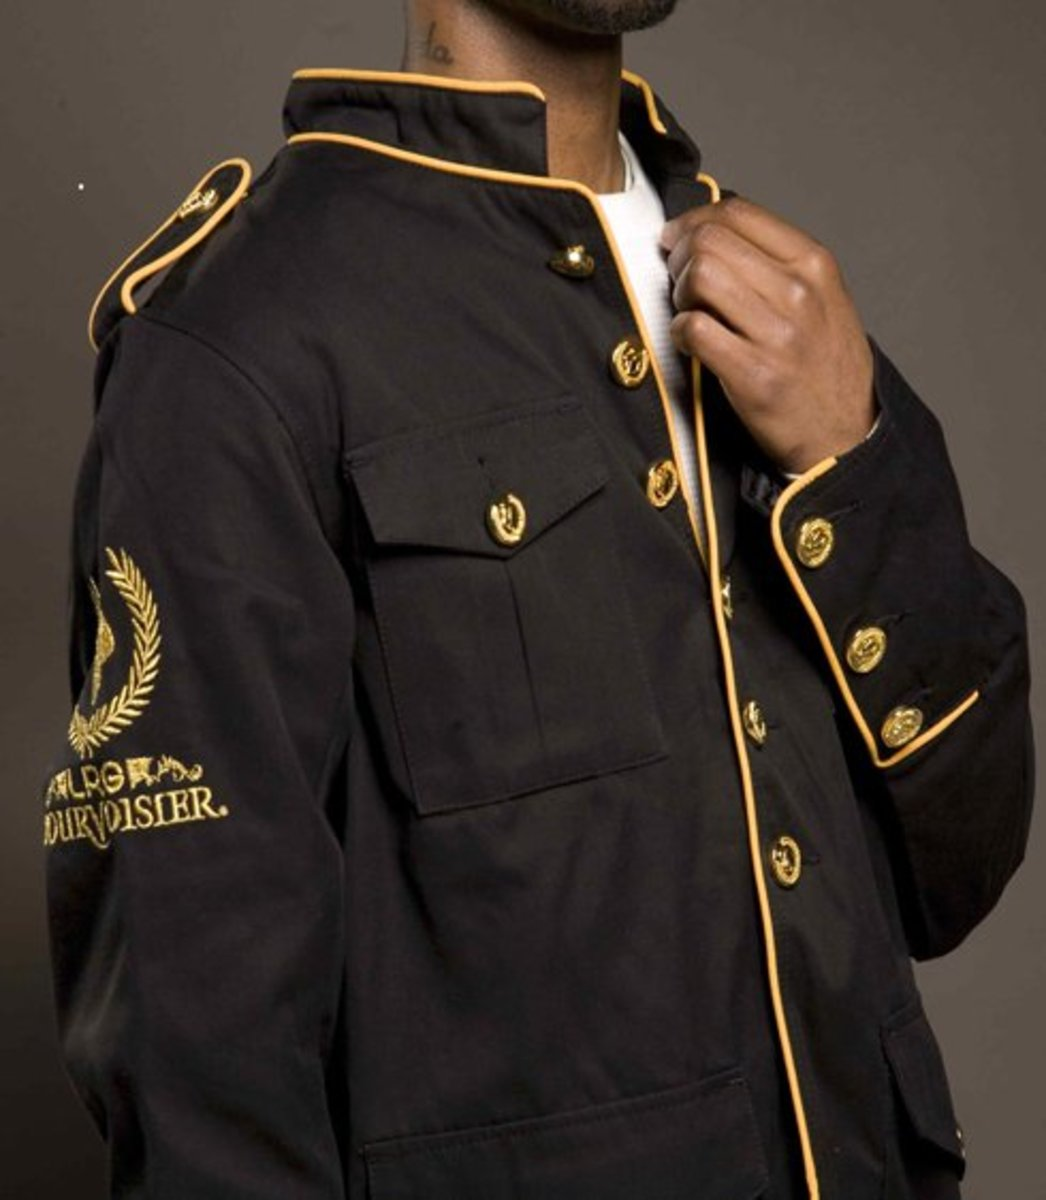 COURVOISIER x LRG - The Collection